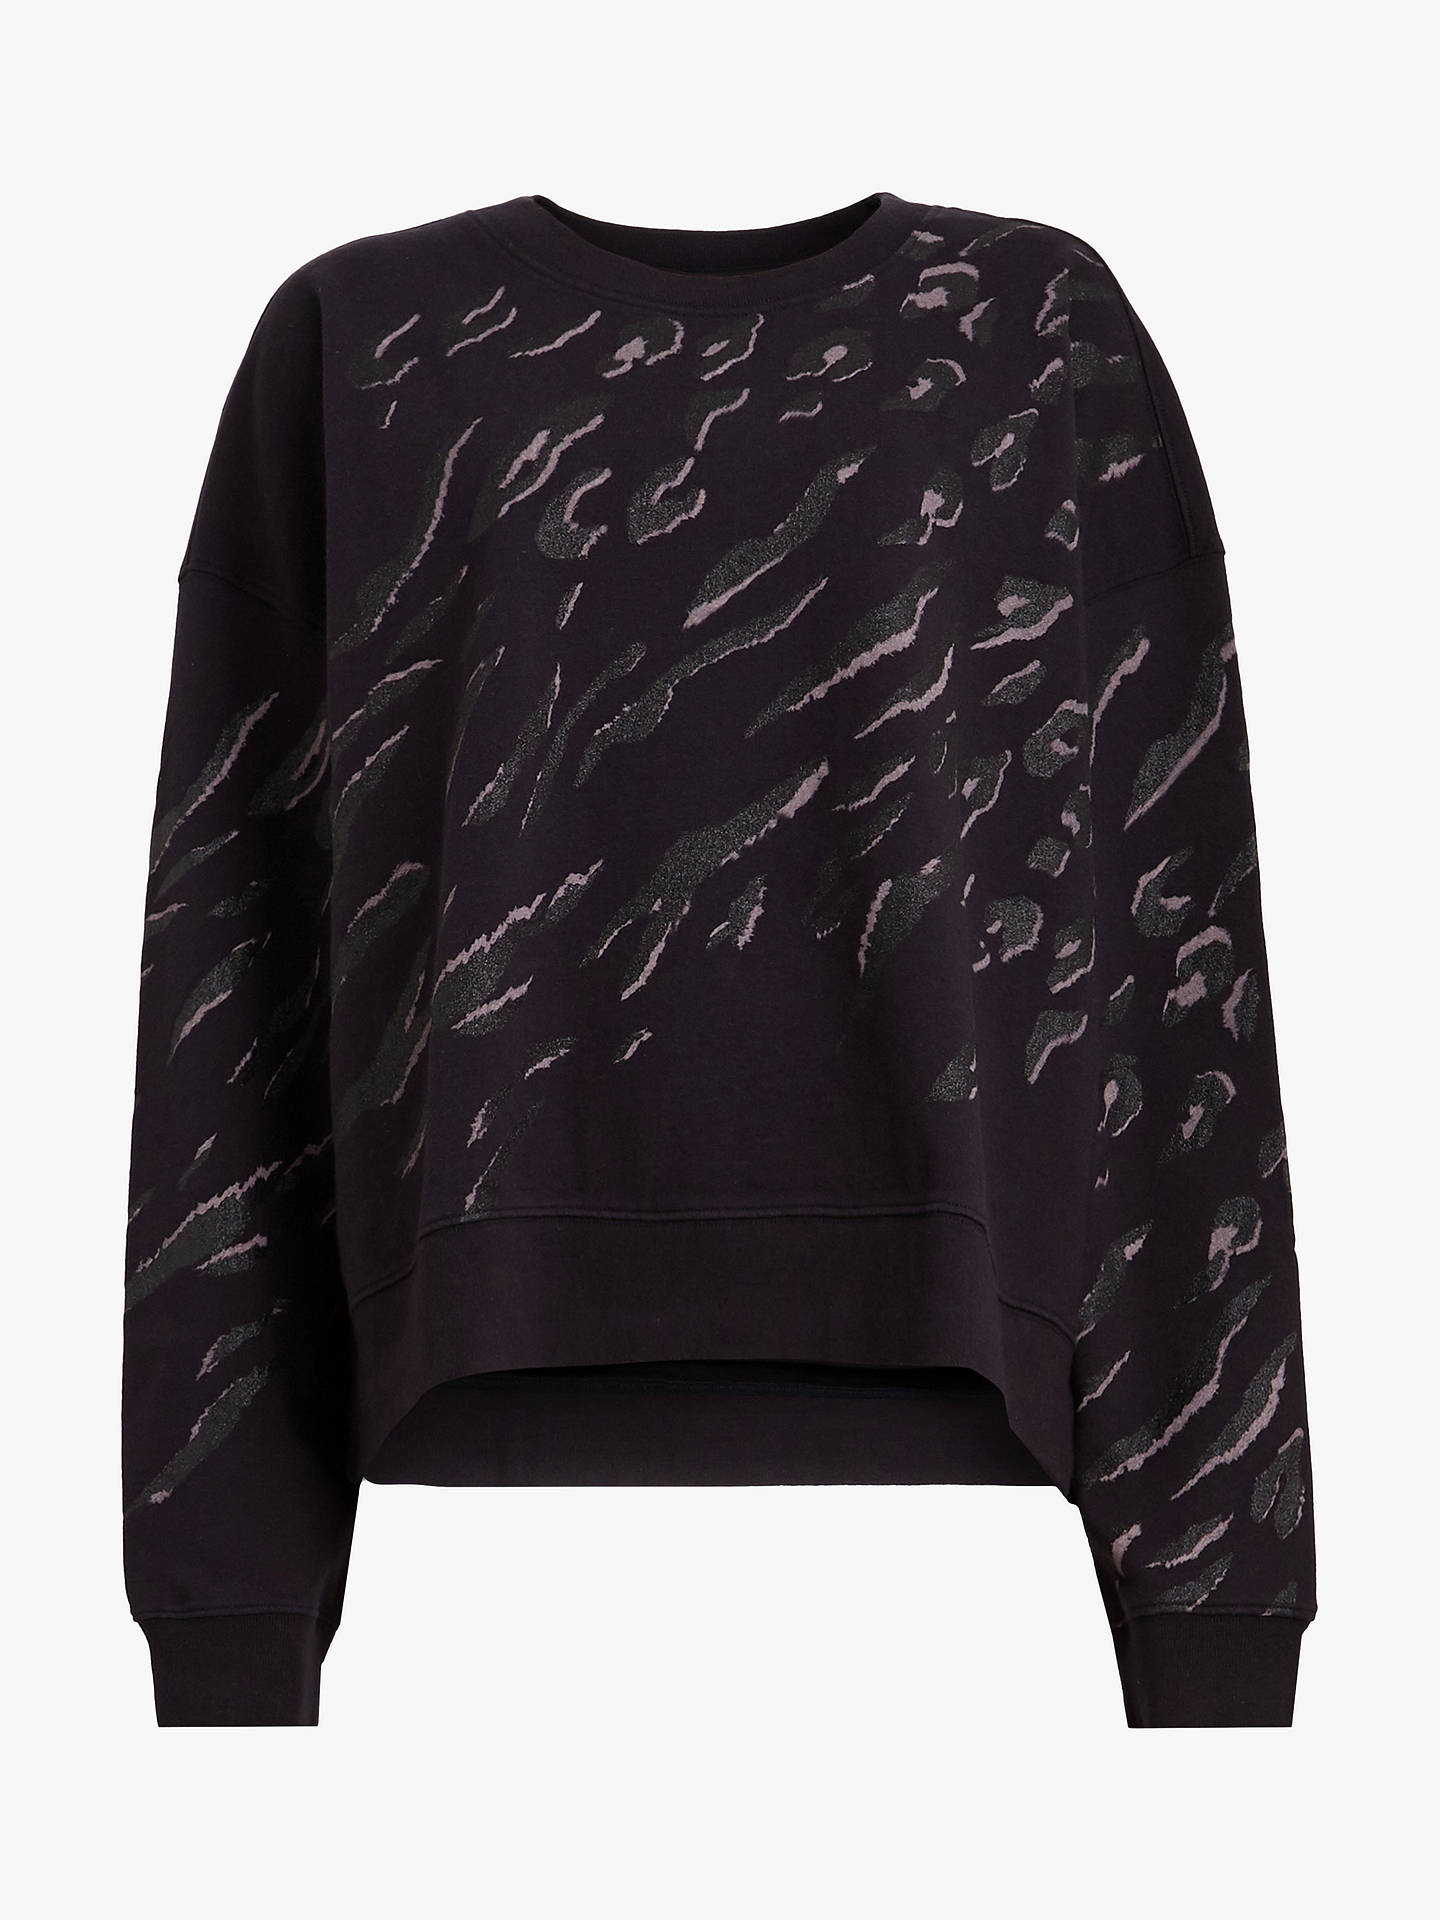 Buy AllSaints Aslan Lo Sweatshirt, Petrol Black, L Online at johnlewis.com